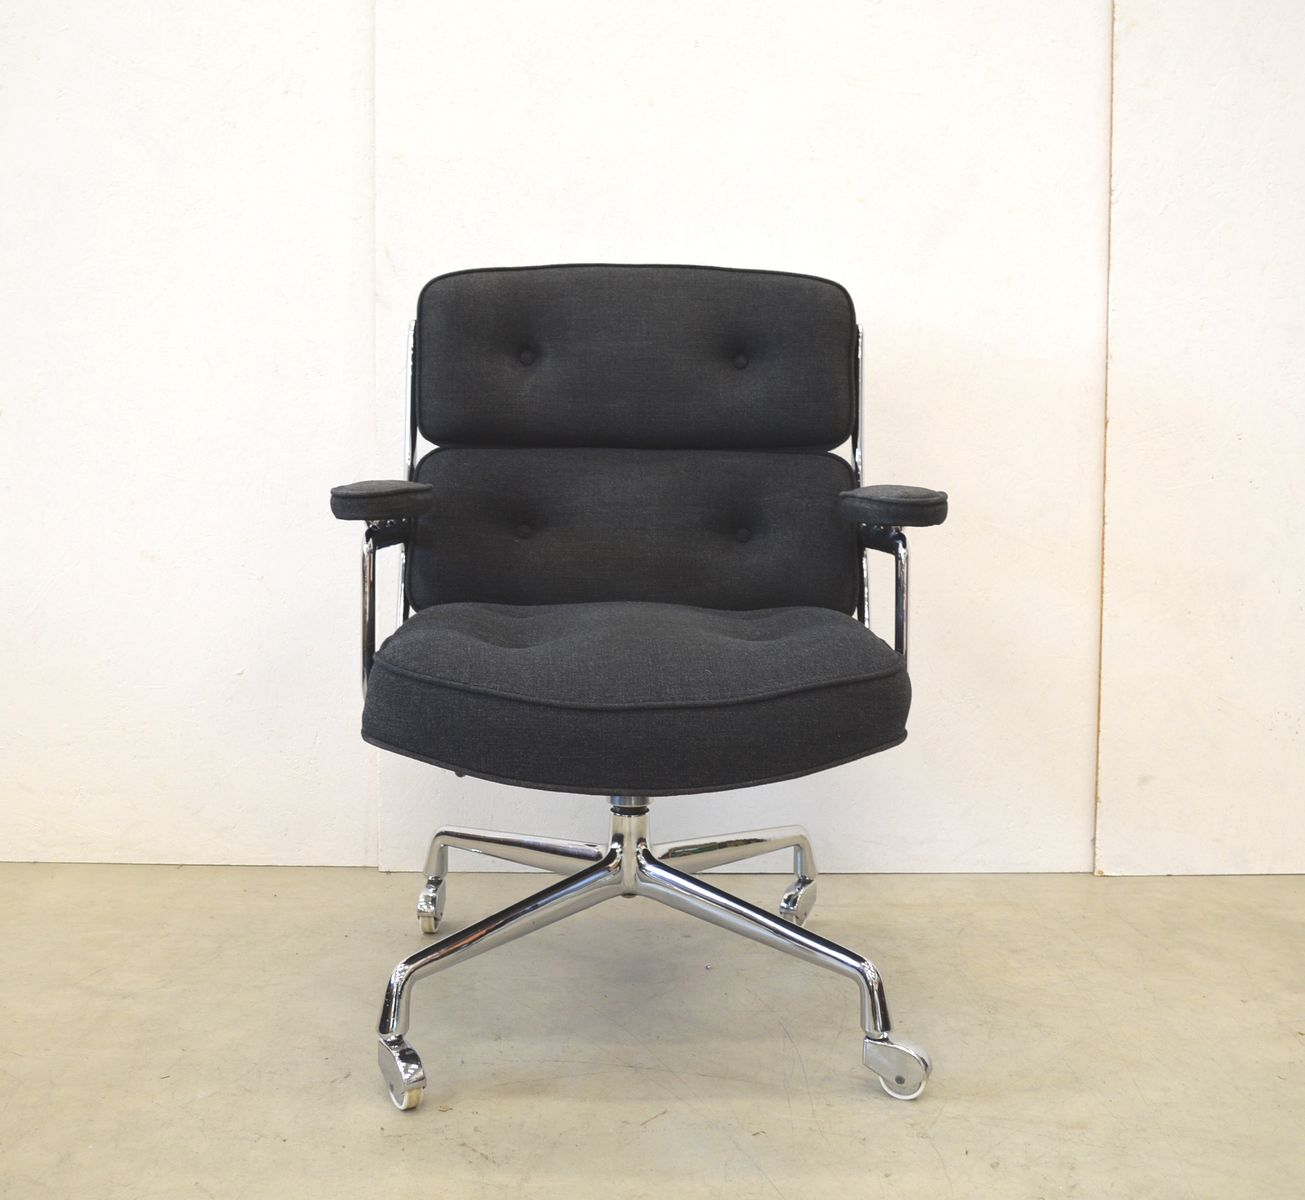 Fauteuil lobby model es104 par charles ray eames pour for Fauteuil charles ray eames